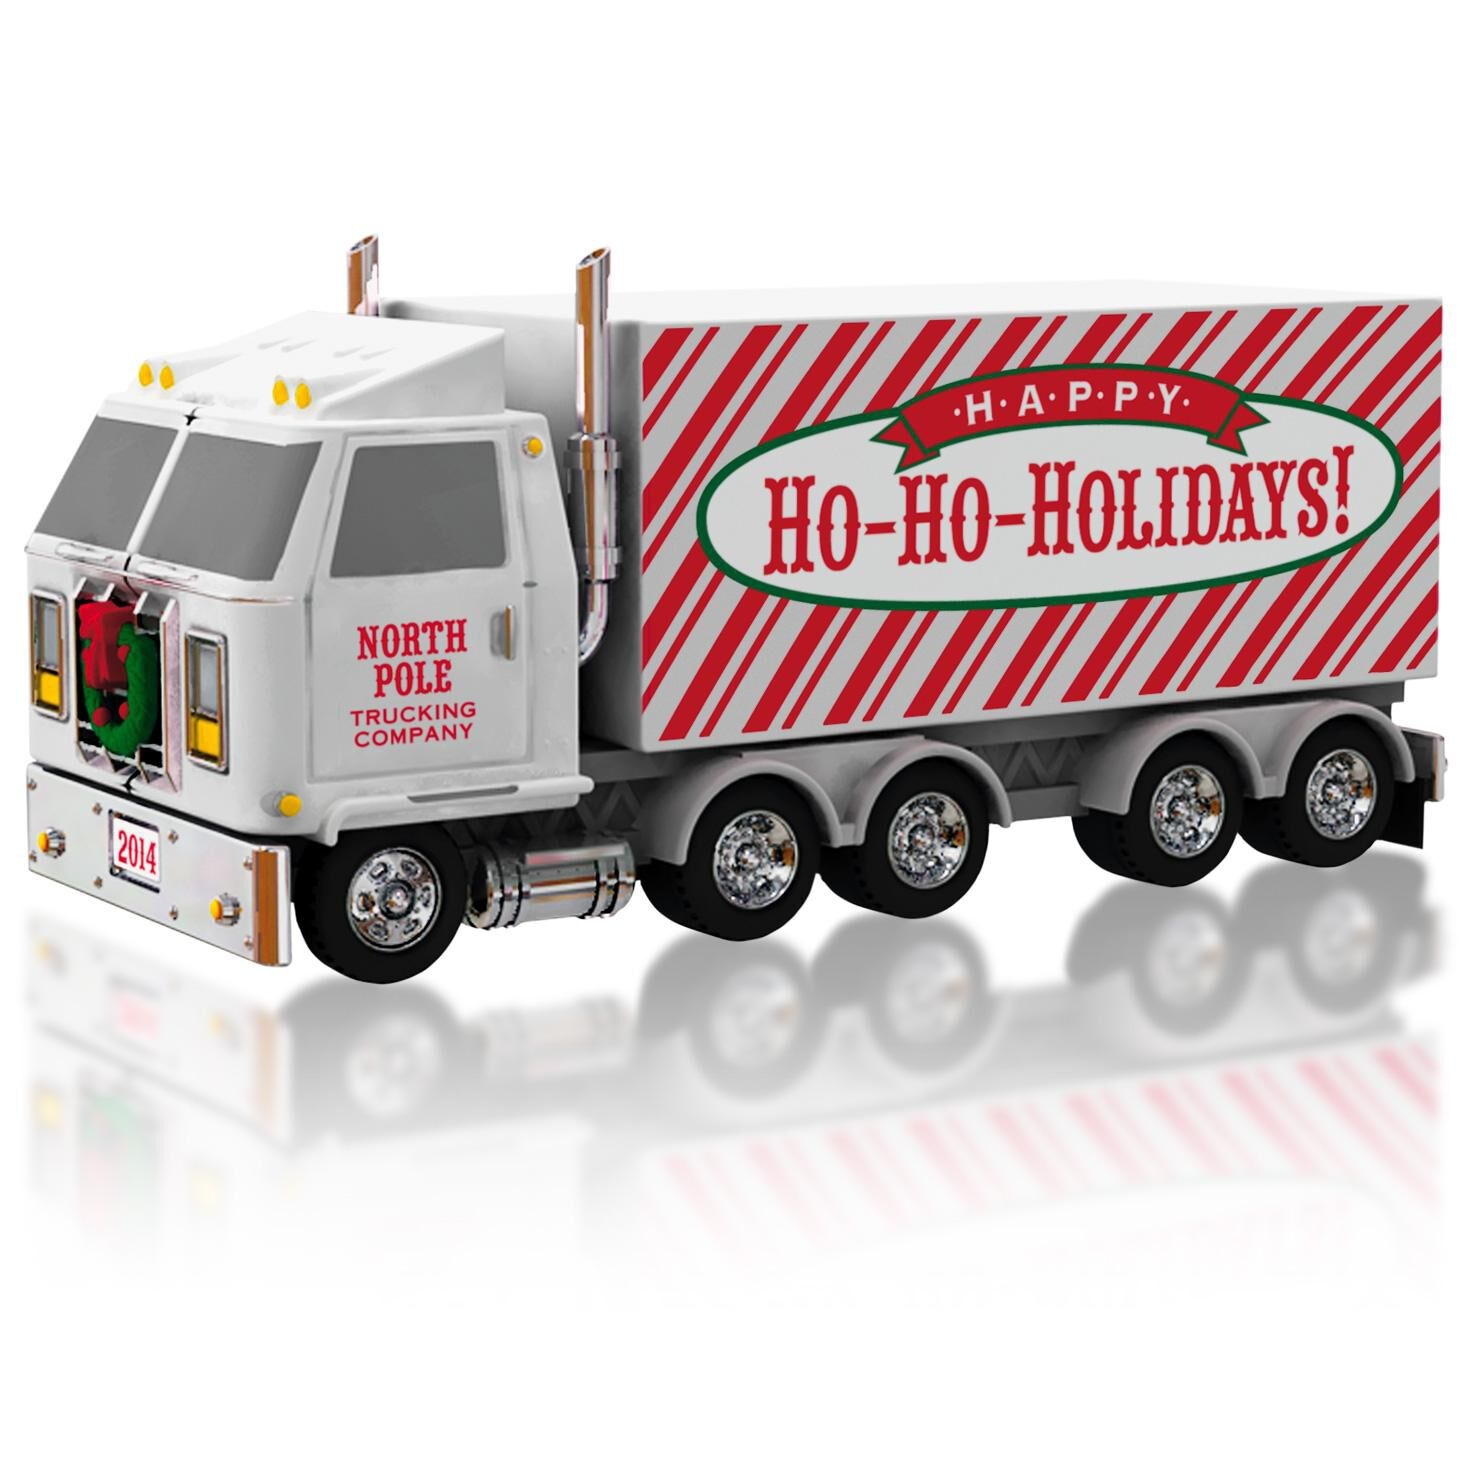 christmas convoy keepsake ornaments hallmark - Hallmark Christmas Commercial